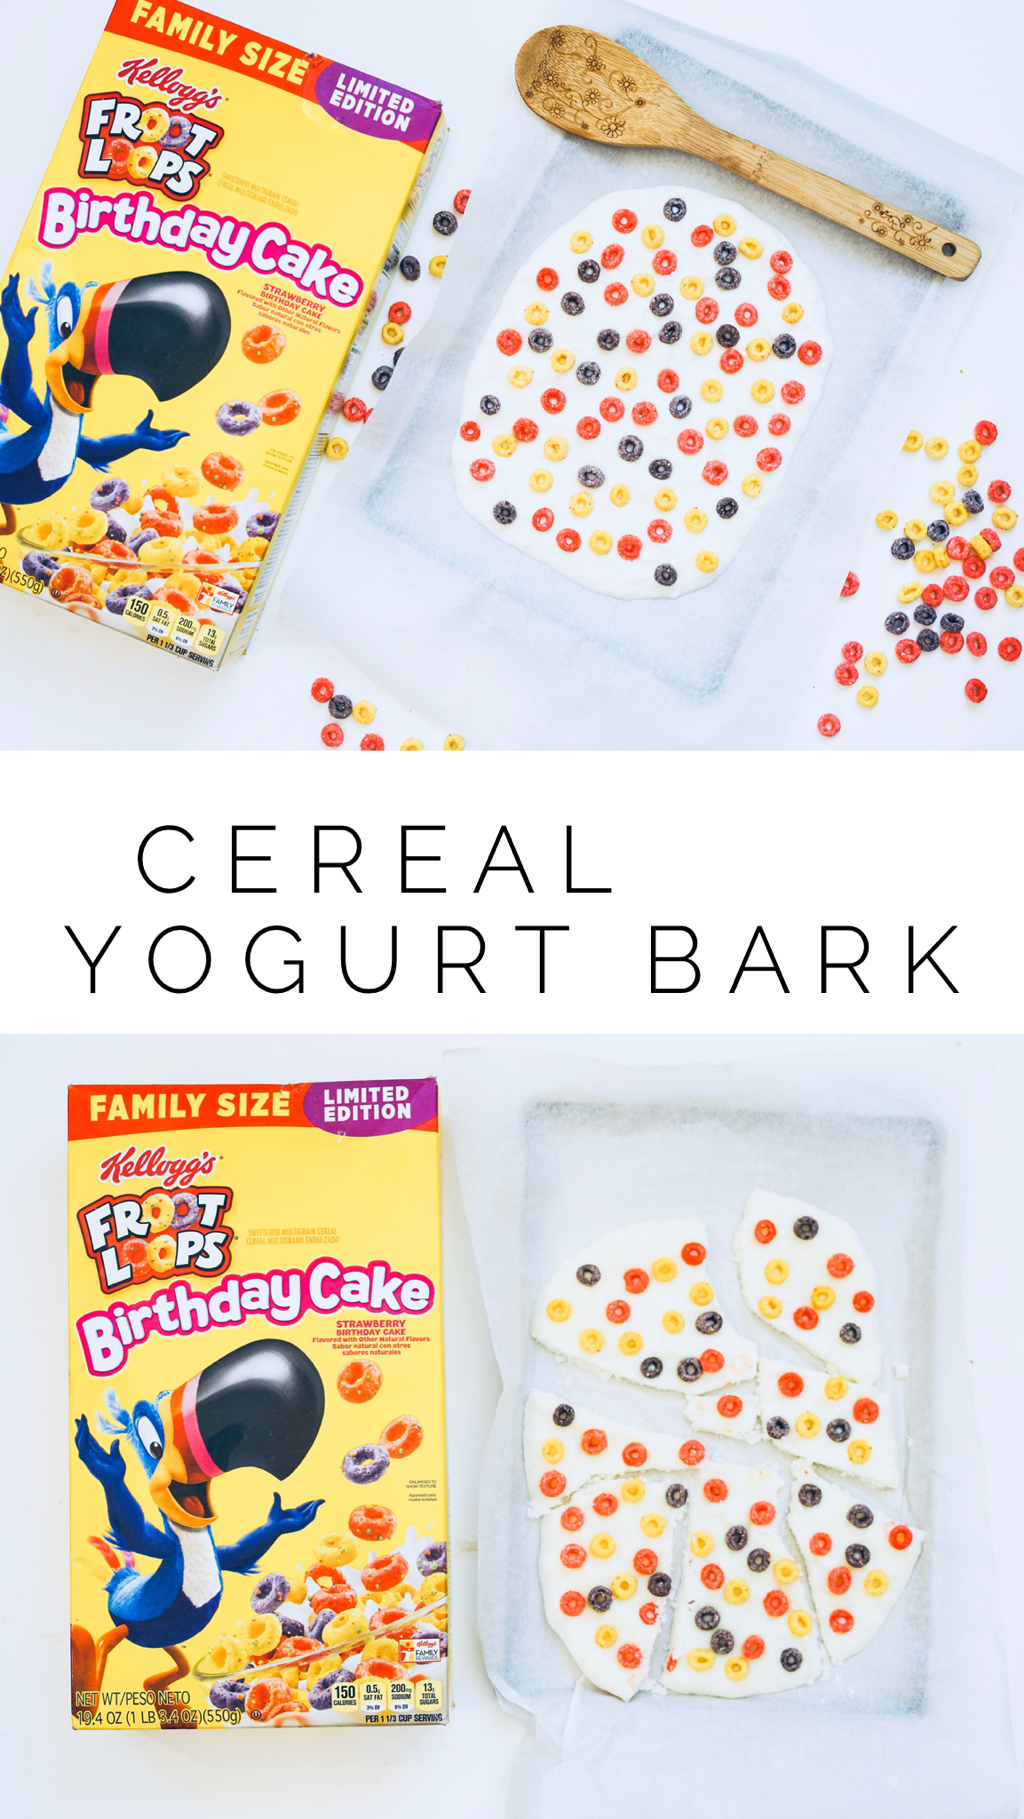 Cereal Yogurt Bark